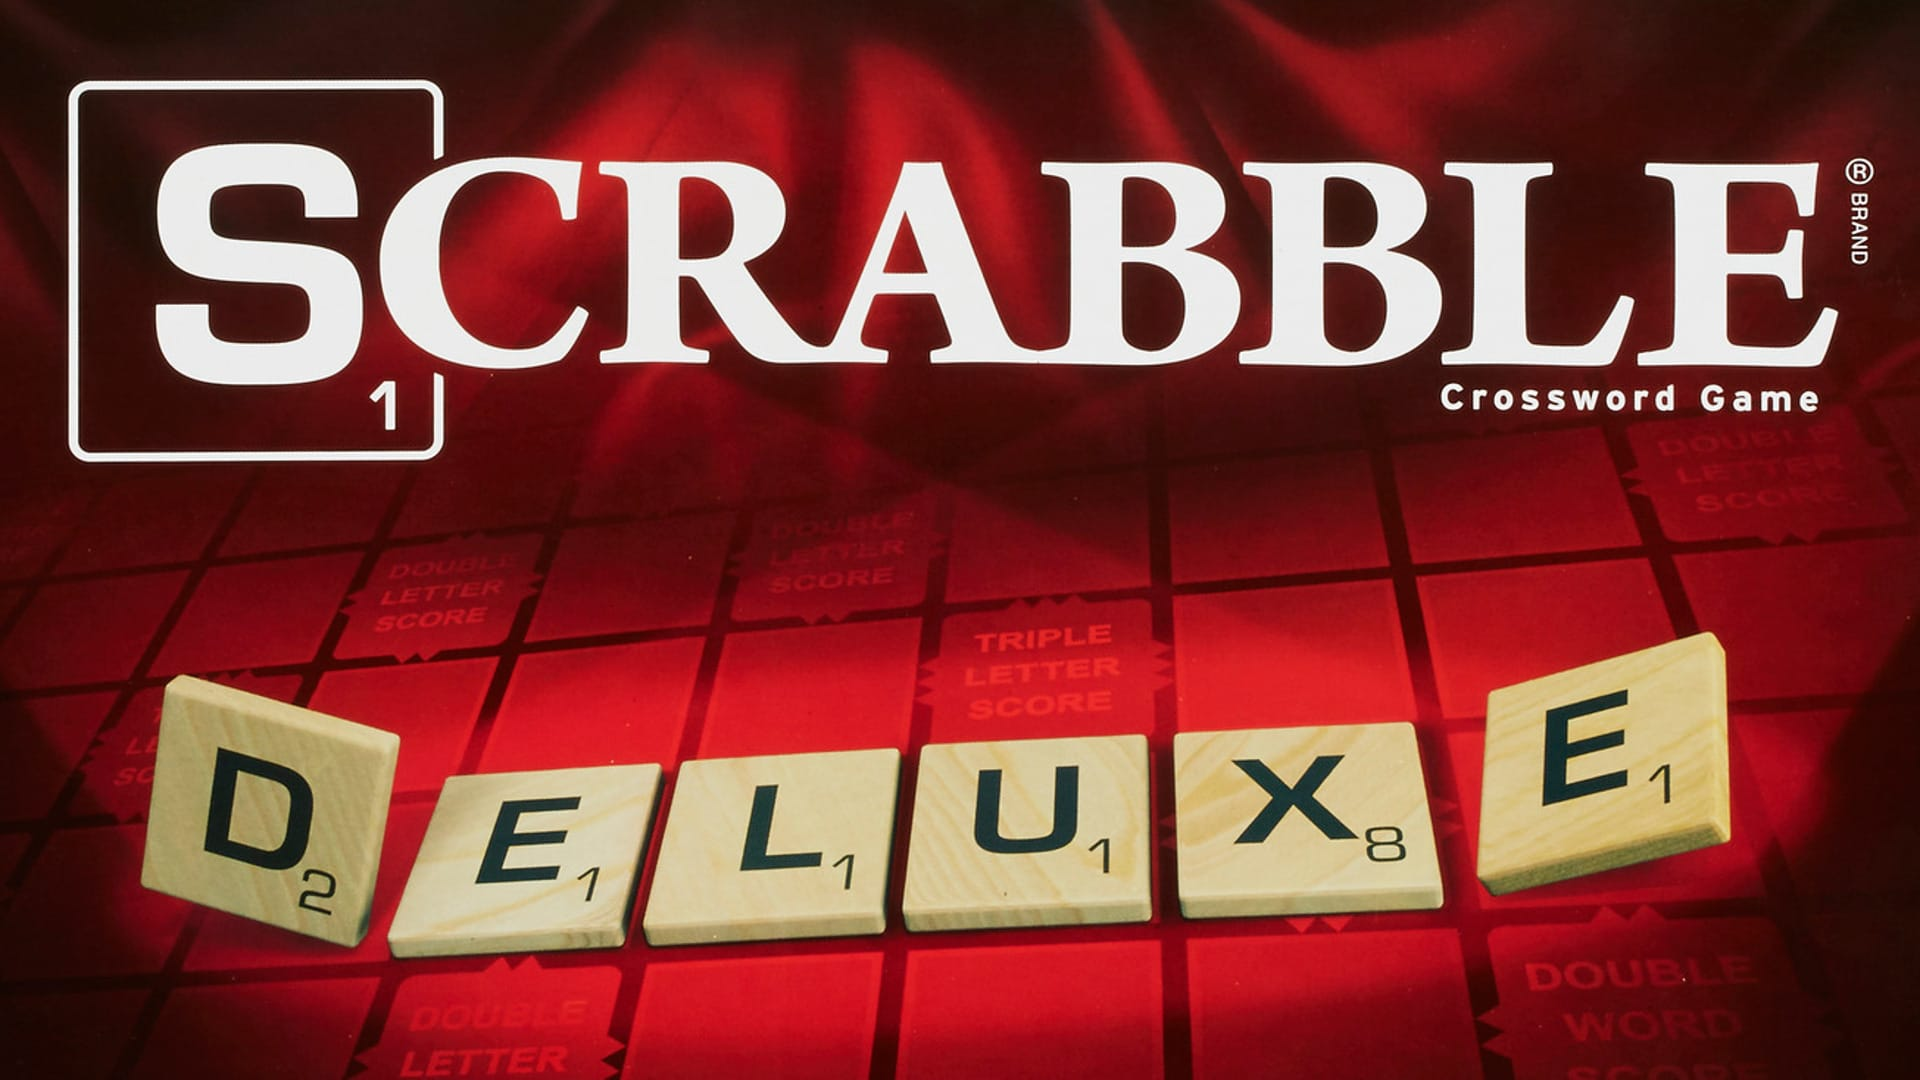 Scrabble Game Rules and How to Play Guide